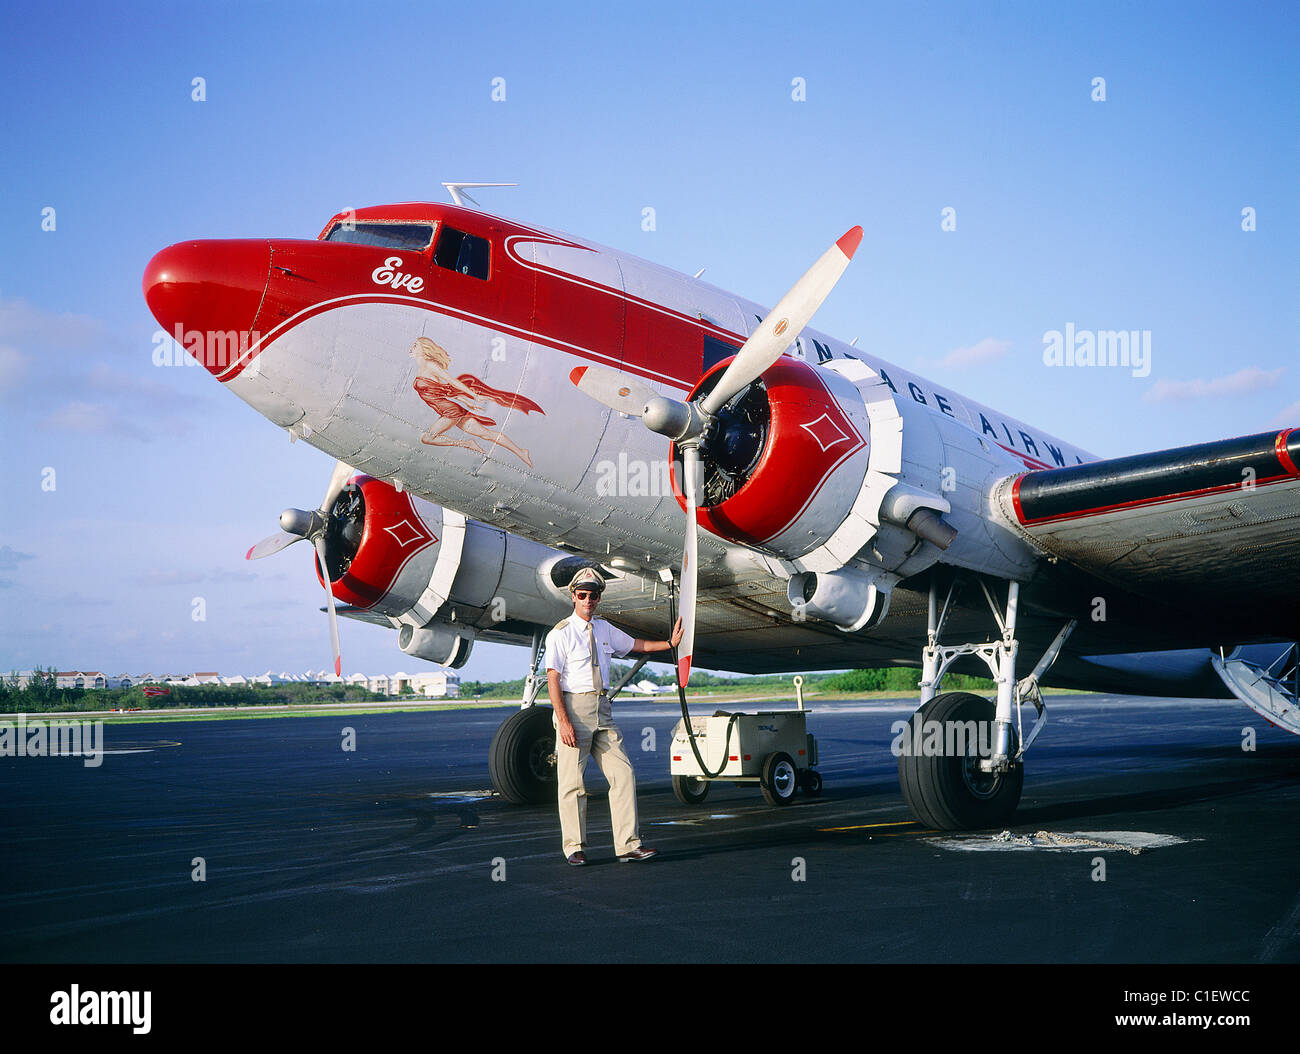 haircut boca raton vintage florida stock photos amp vintage florida 1852 | united states florida key west old dc3 operated by vintage C1EWCC